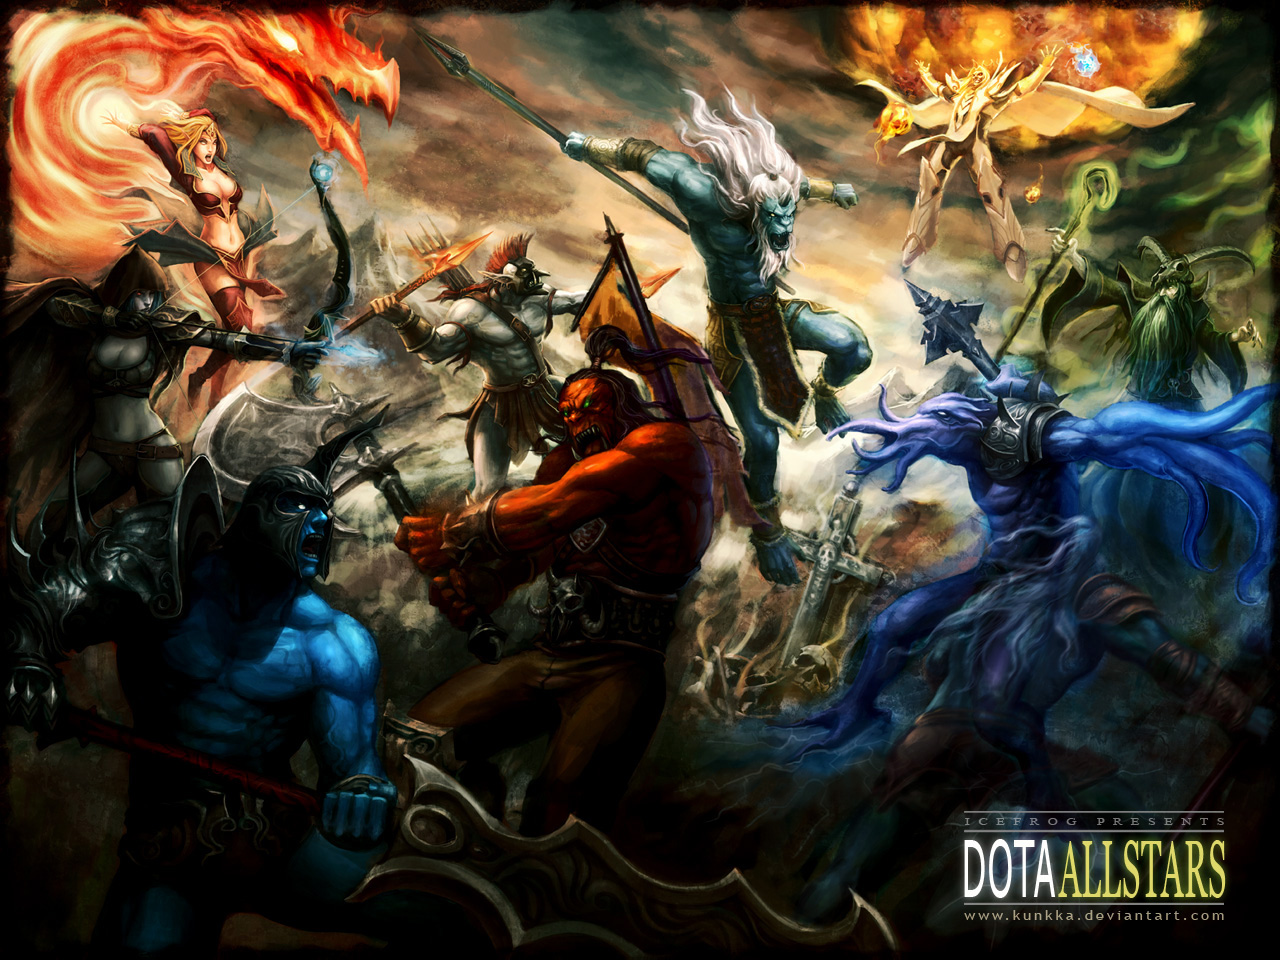 Dota 2 es más complejo que League of Legends